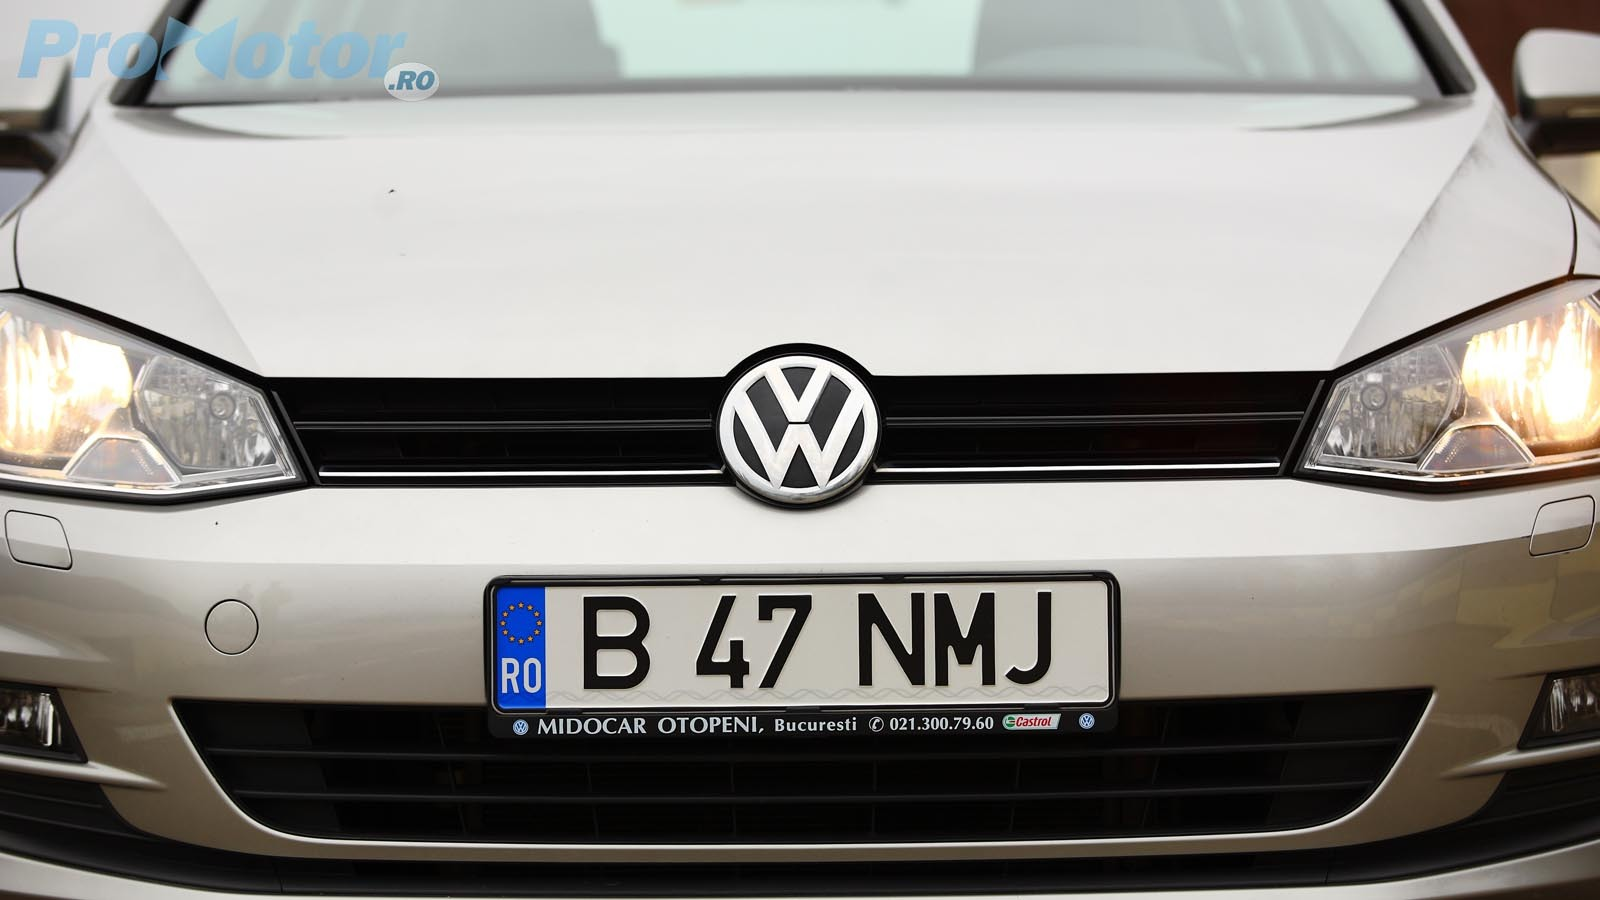 test vw golf 7 1 6 tdi 105 cp golf ul diesel accesibil. Black Bedroom Furniture Sets. Home Design Ideas